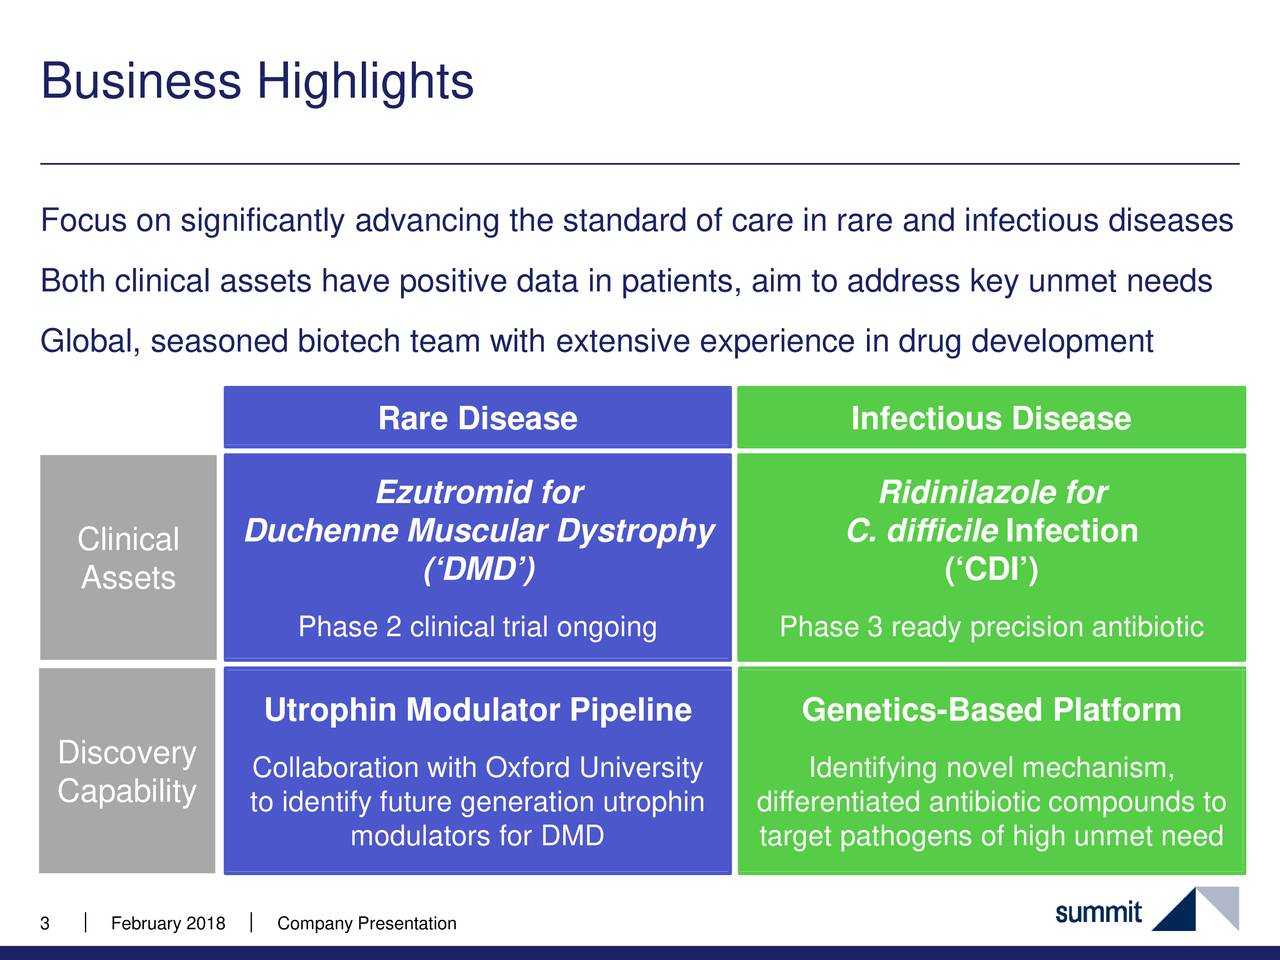 Duchenne Muscular Dystrophy Quotes Summit Therapeutics Smmt Presents At Bio Ceo And Investor